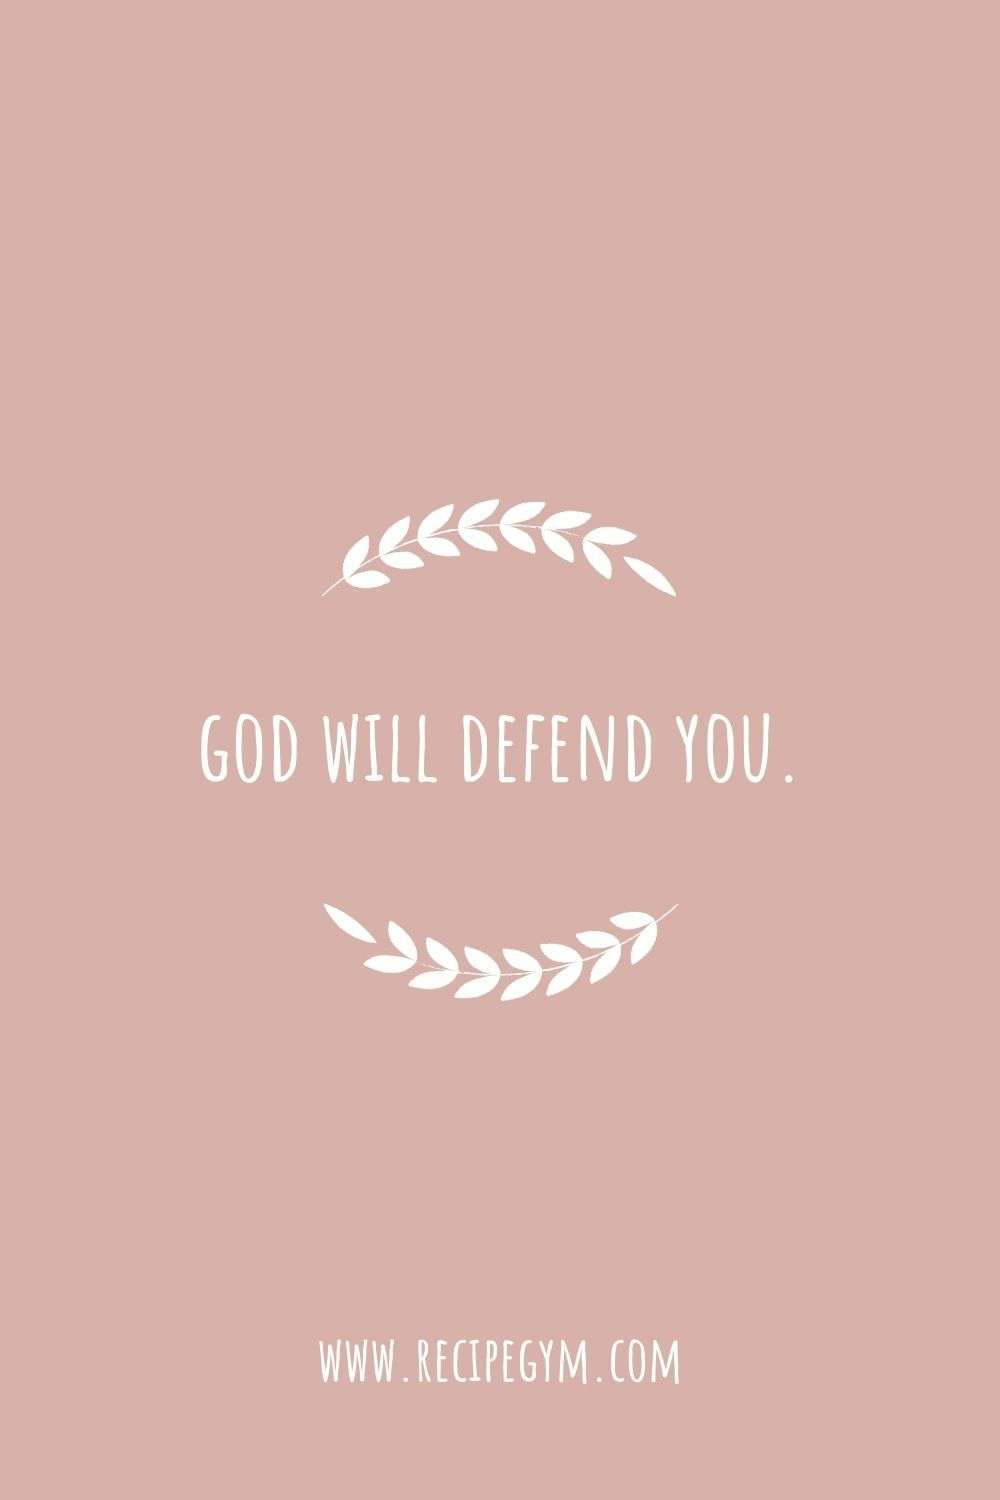 God will defend you   Jesus Cares   Love of God   Bible Quotes   Bible Aesthetic   Bible Wallpaper